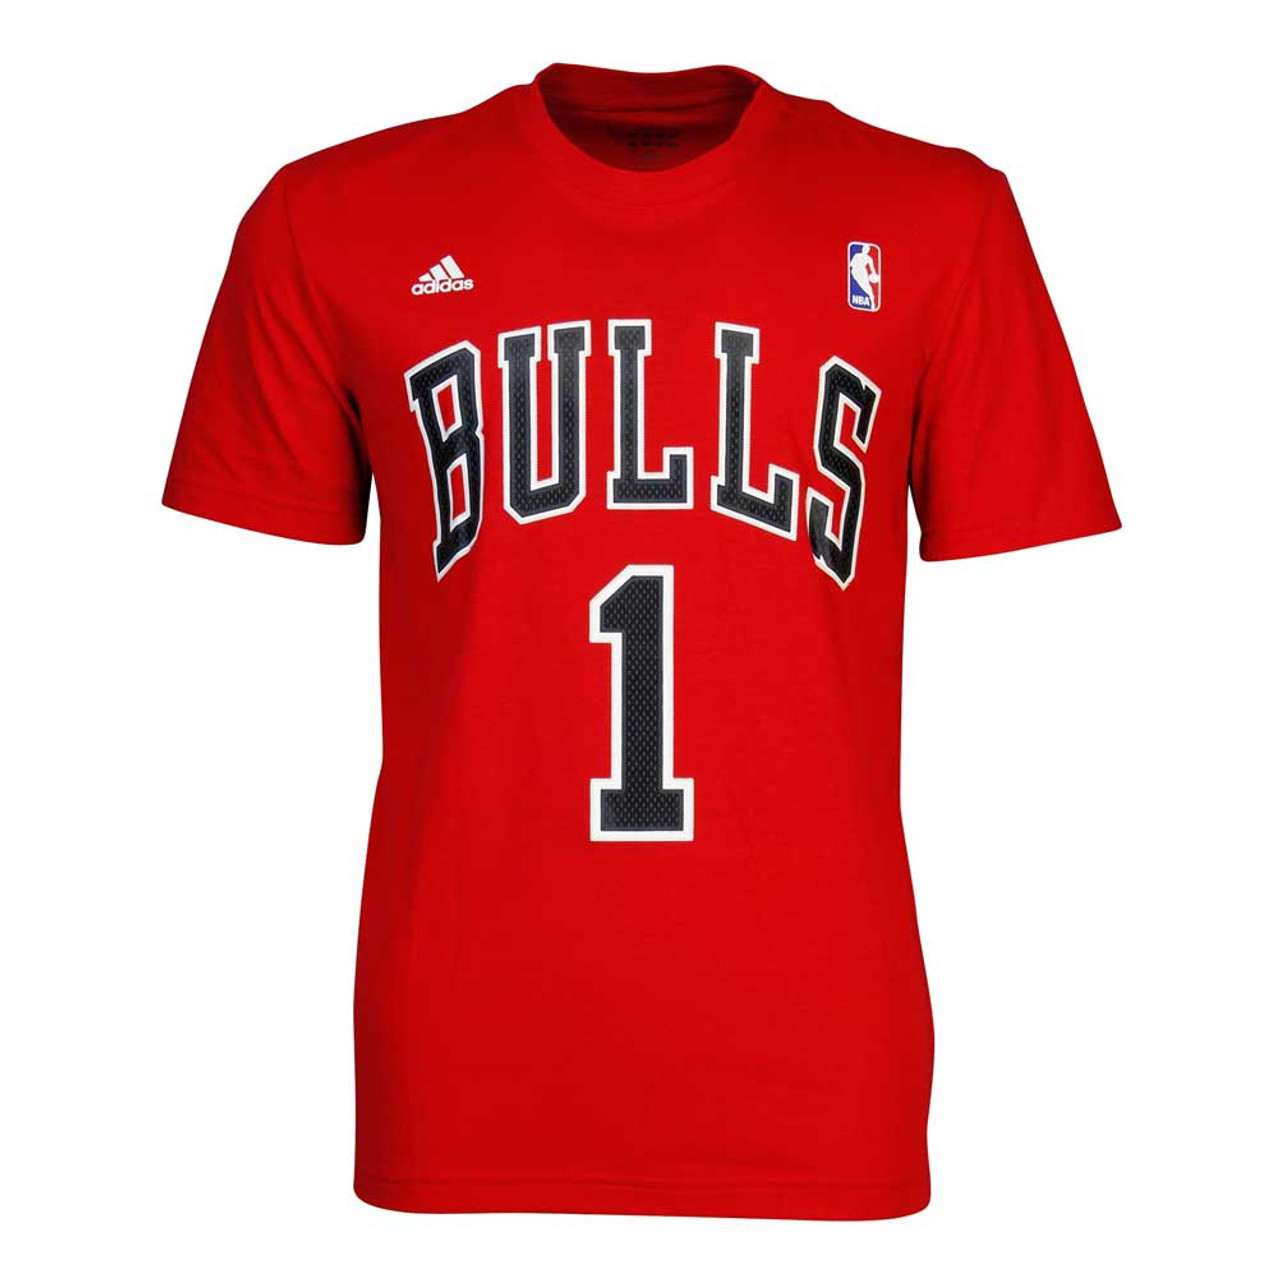 ADIDAS chicago bulls basketball gametime T shirt [Red]